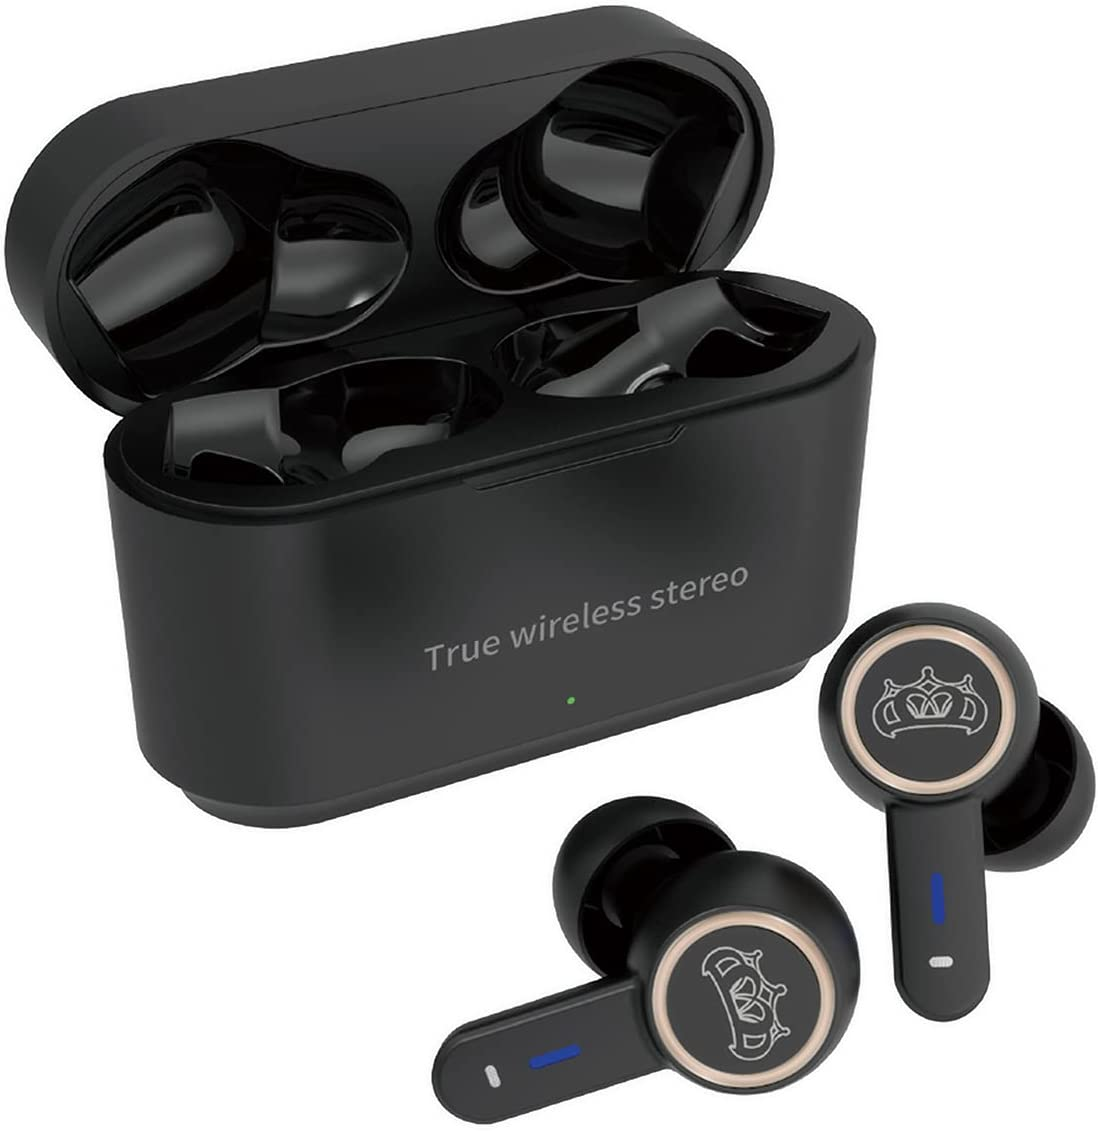 YYJY S16 True Wireless Earbuds Bluetooth Headphones Touch Control with Wireless Nosie Cancelling IPX8 Waterproof Stereo Earphones in-Ear Built-in Mic Headsets Premium Deep Bass for Sports Black